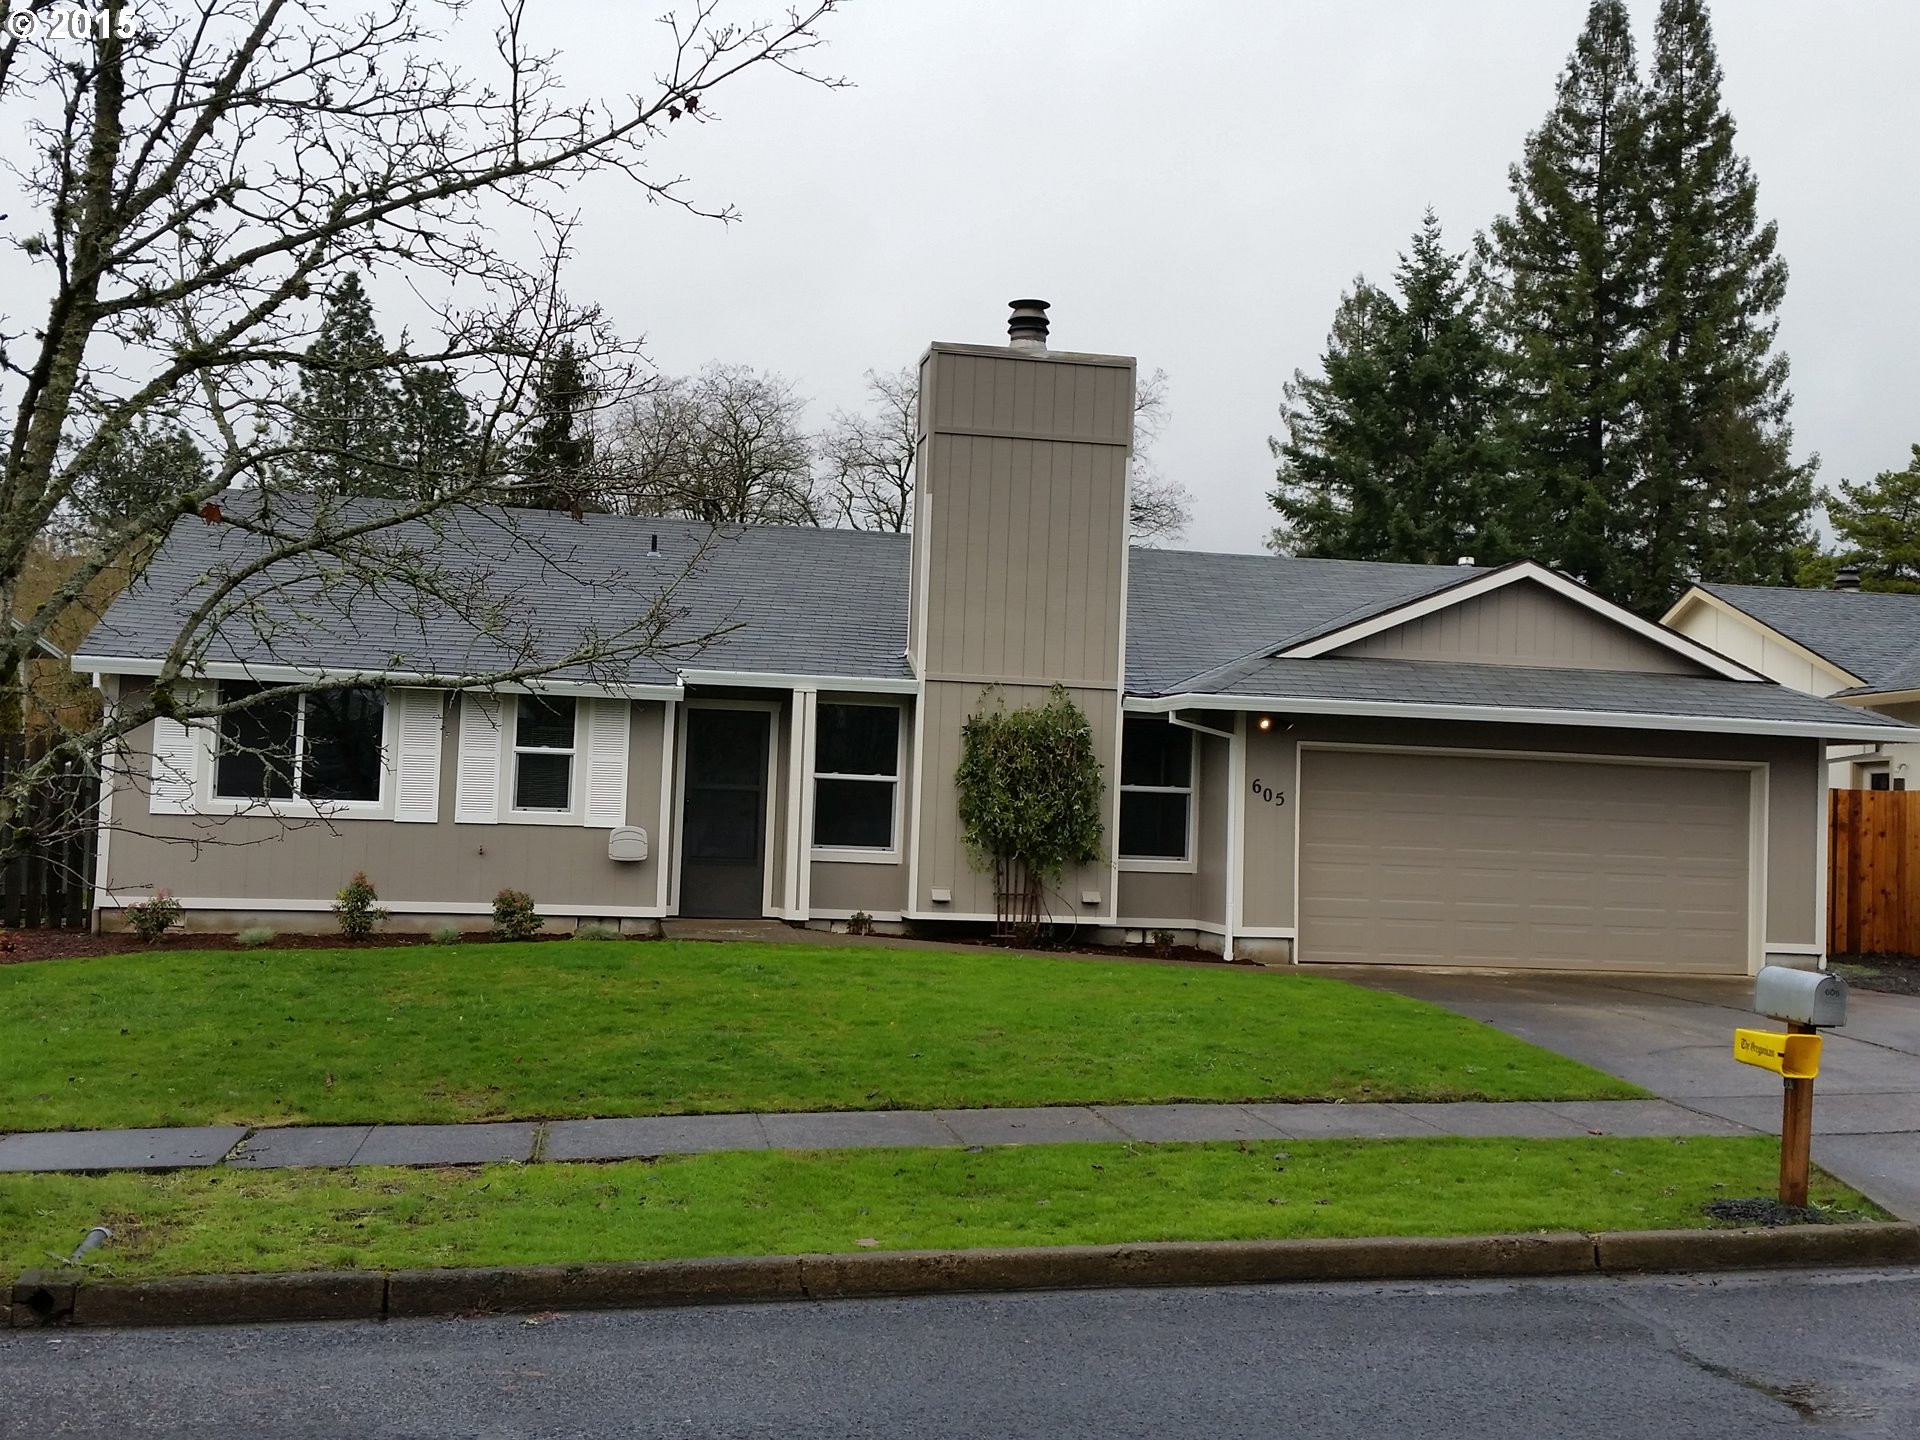 605 e foothills dr newberg or 97132 house for sale in newberg or